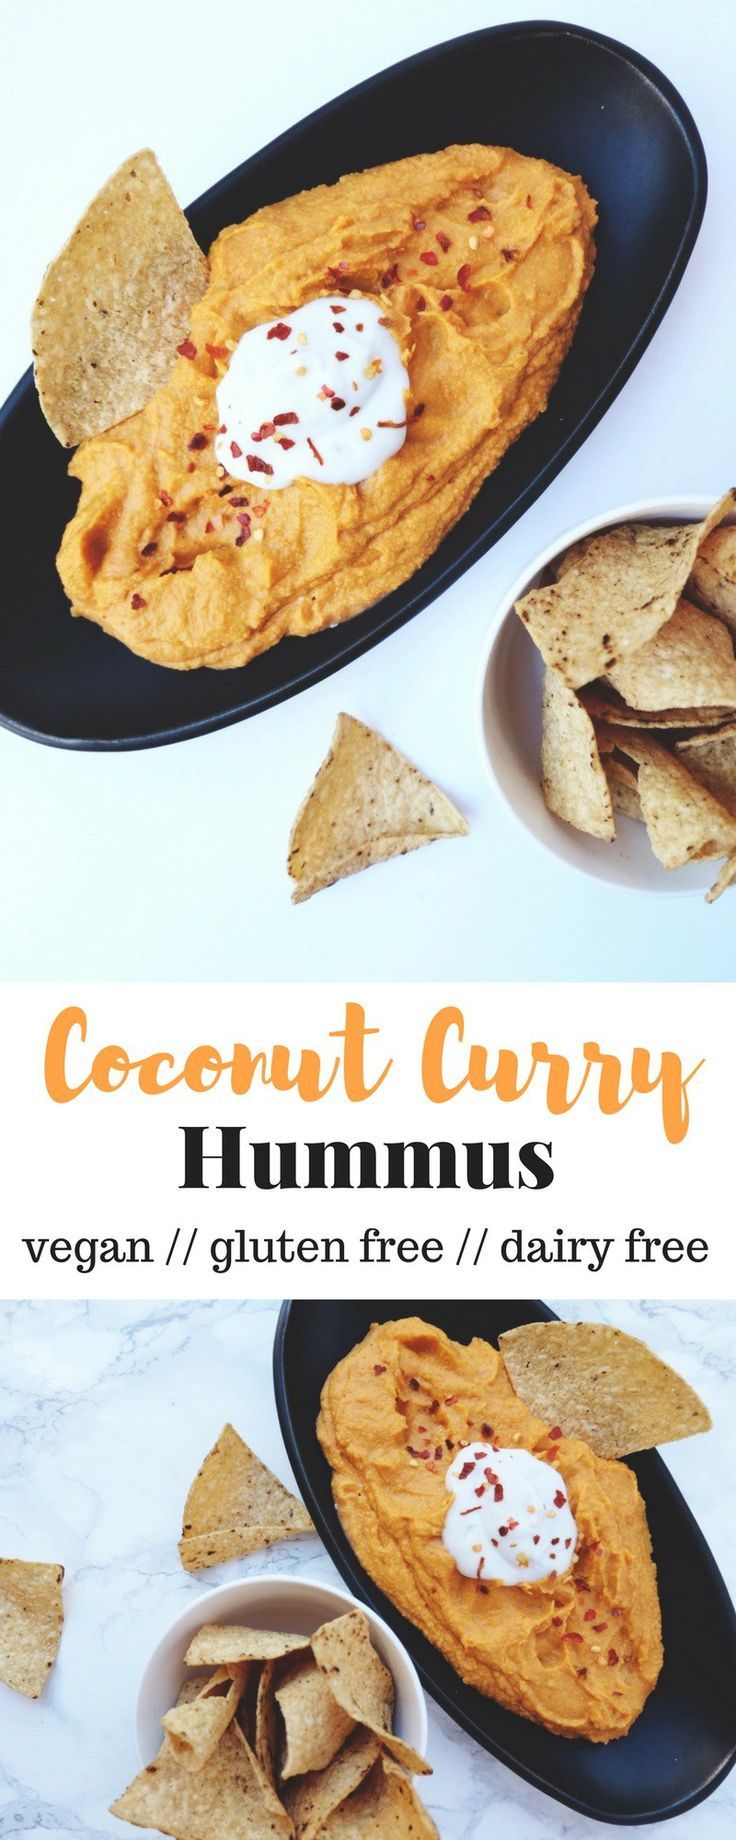 An upgraded version of you favorite dip, this Coconut Curry Hummus is a little spicy and sweet and makes for a delicious creamy, dairy free, and vegan hummus - Eat the Gains